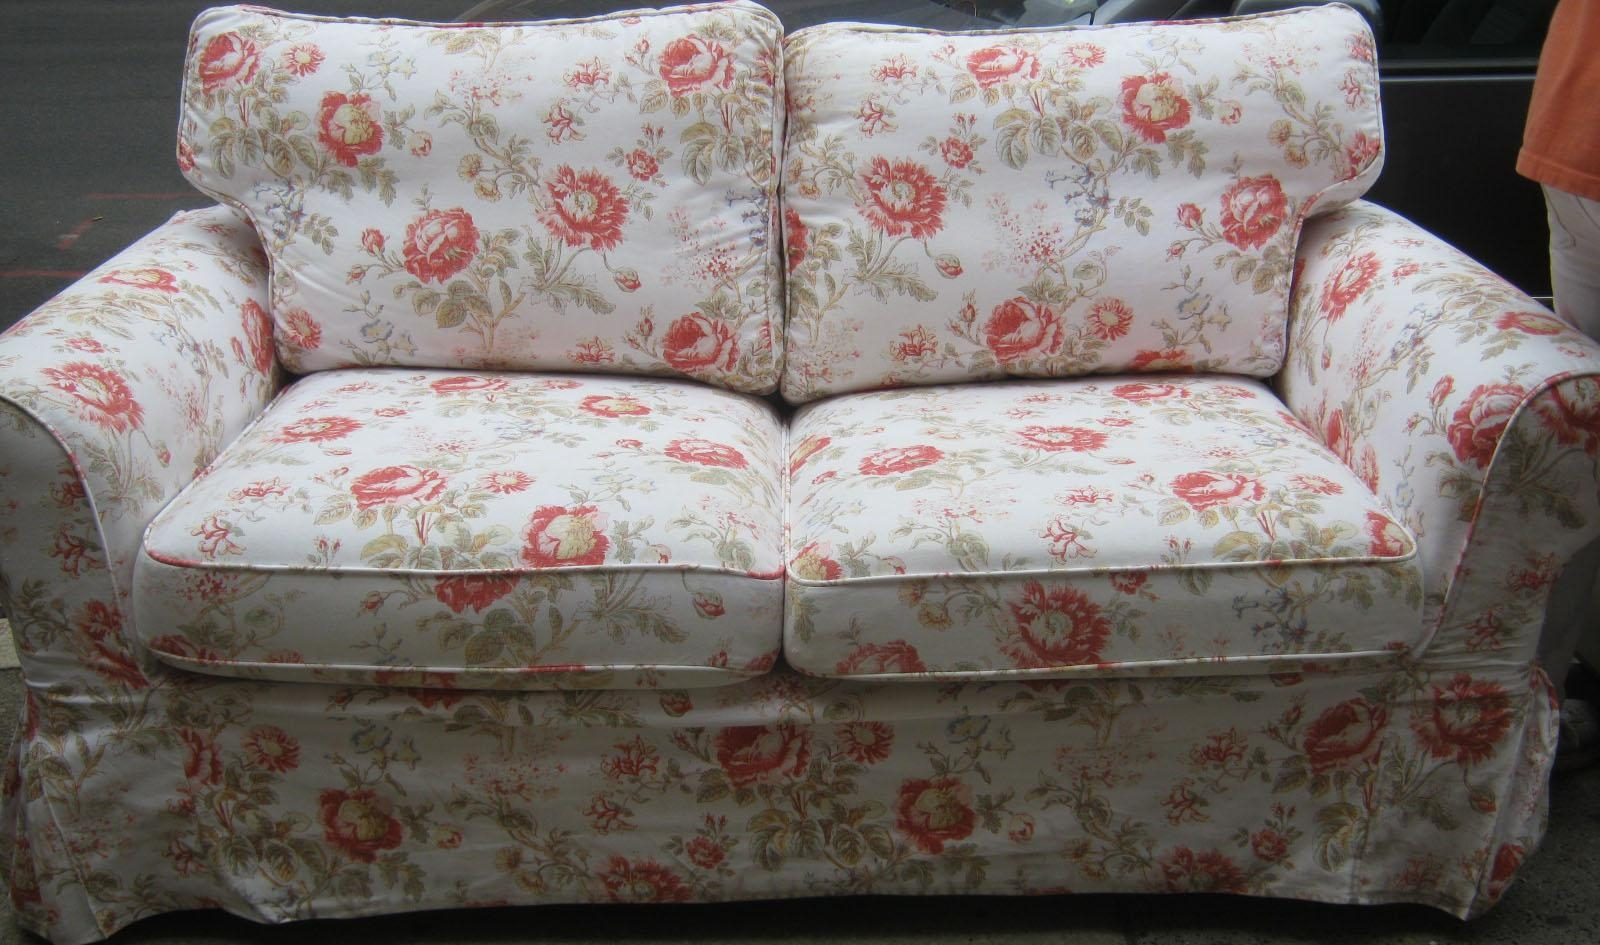 Floral Sofa Slipcovers With Design Hd Images 28817 | Kengire Regarding Floral Sofa Slipcovers (Image 7 of 20)